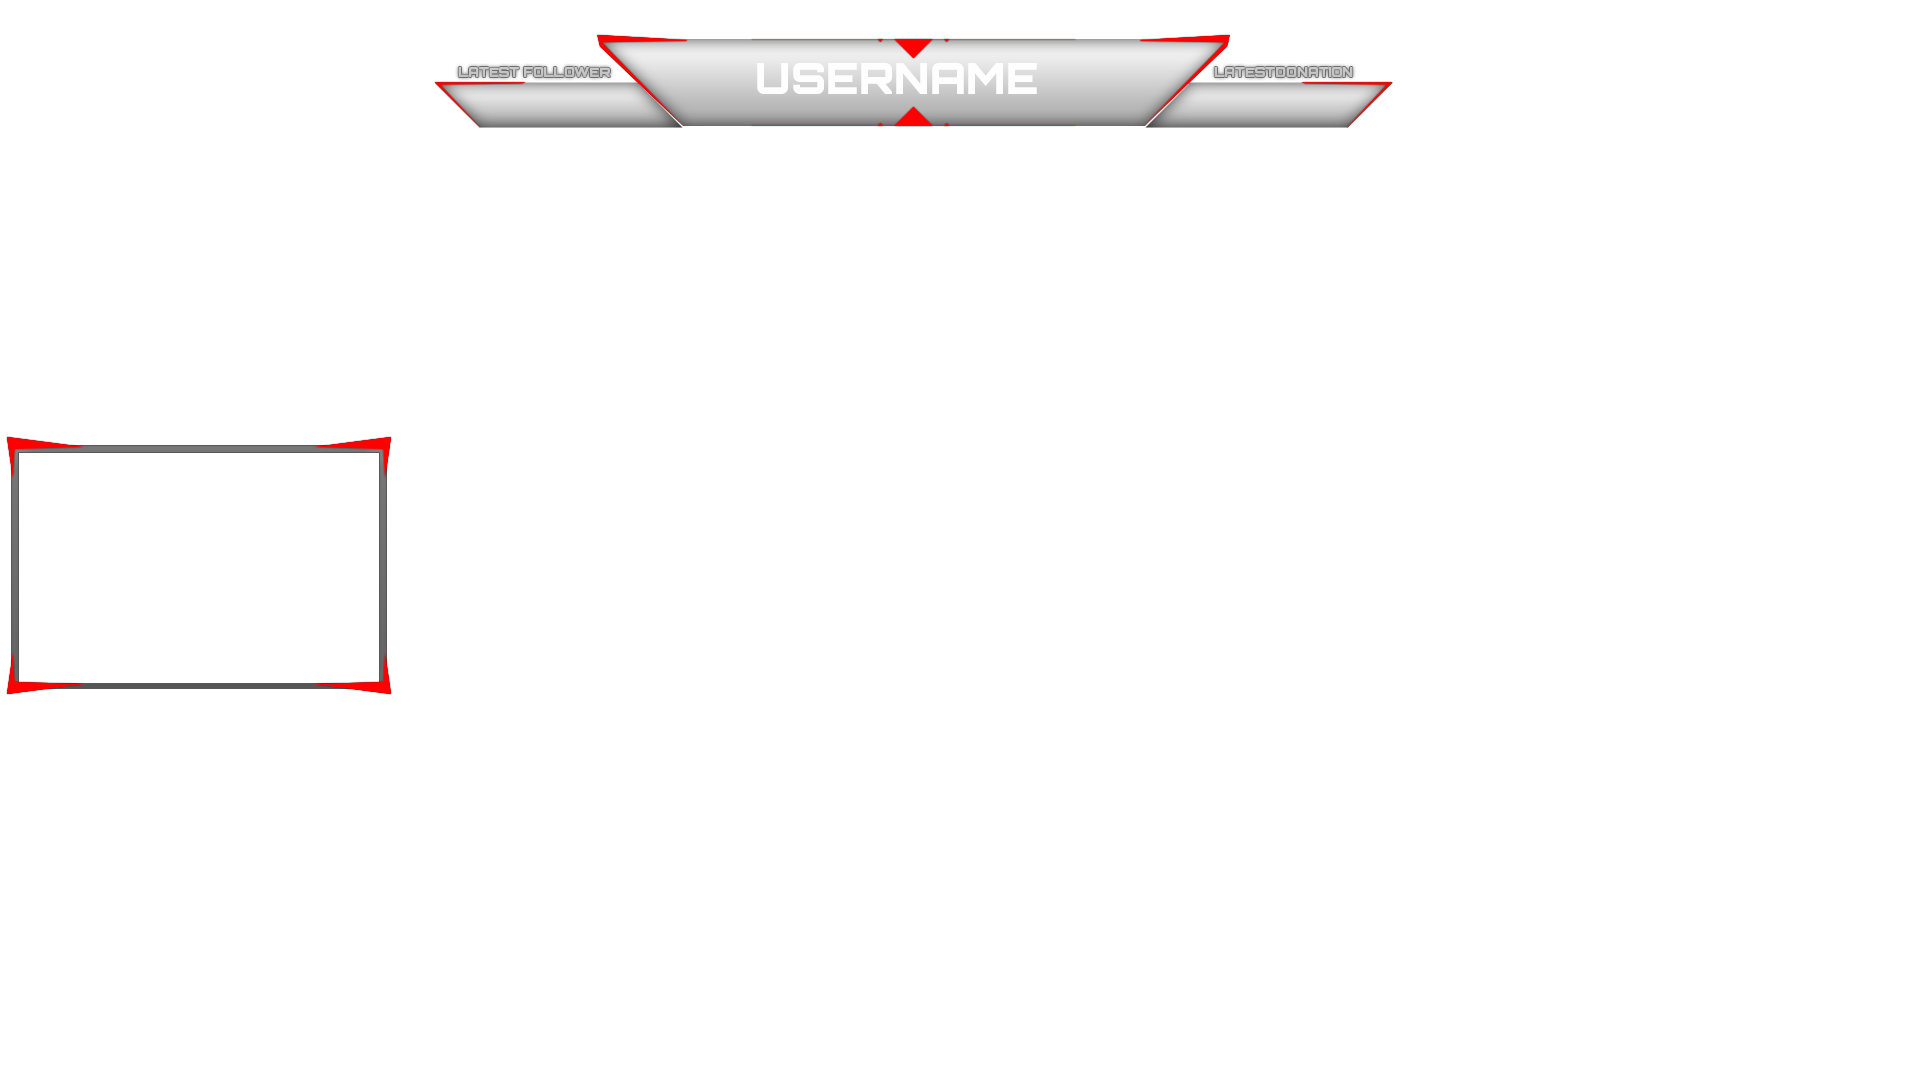 Twitch simple overlay by jaegerpangaia on deviantart for Free twitch overlay template